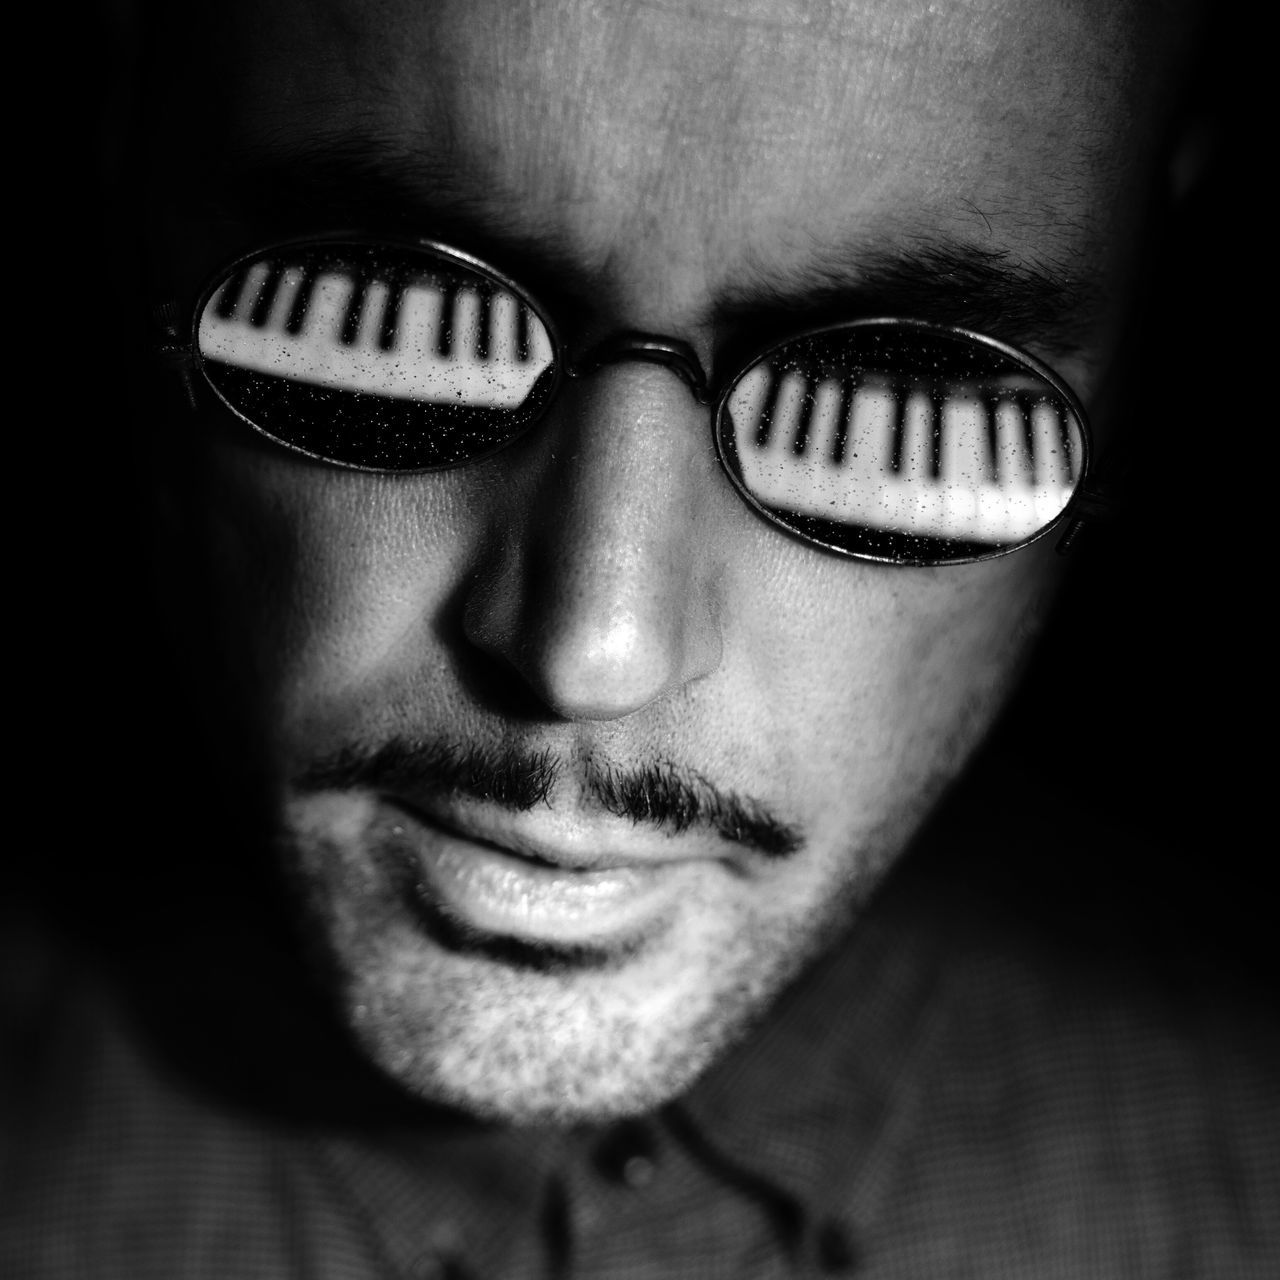 Piano Moments Portrait Close-up Reflection_collection Piano EyeEm Best Shots Black And White Piano Keys Blackandwhite Photography TakeoverMusic Reflections Keyboard Sunglasses Reflection Eyeglasses  Pianist